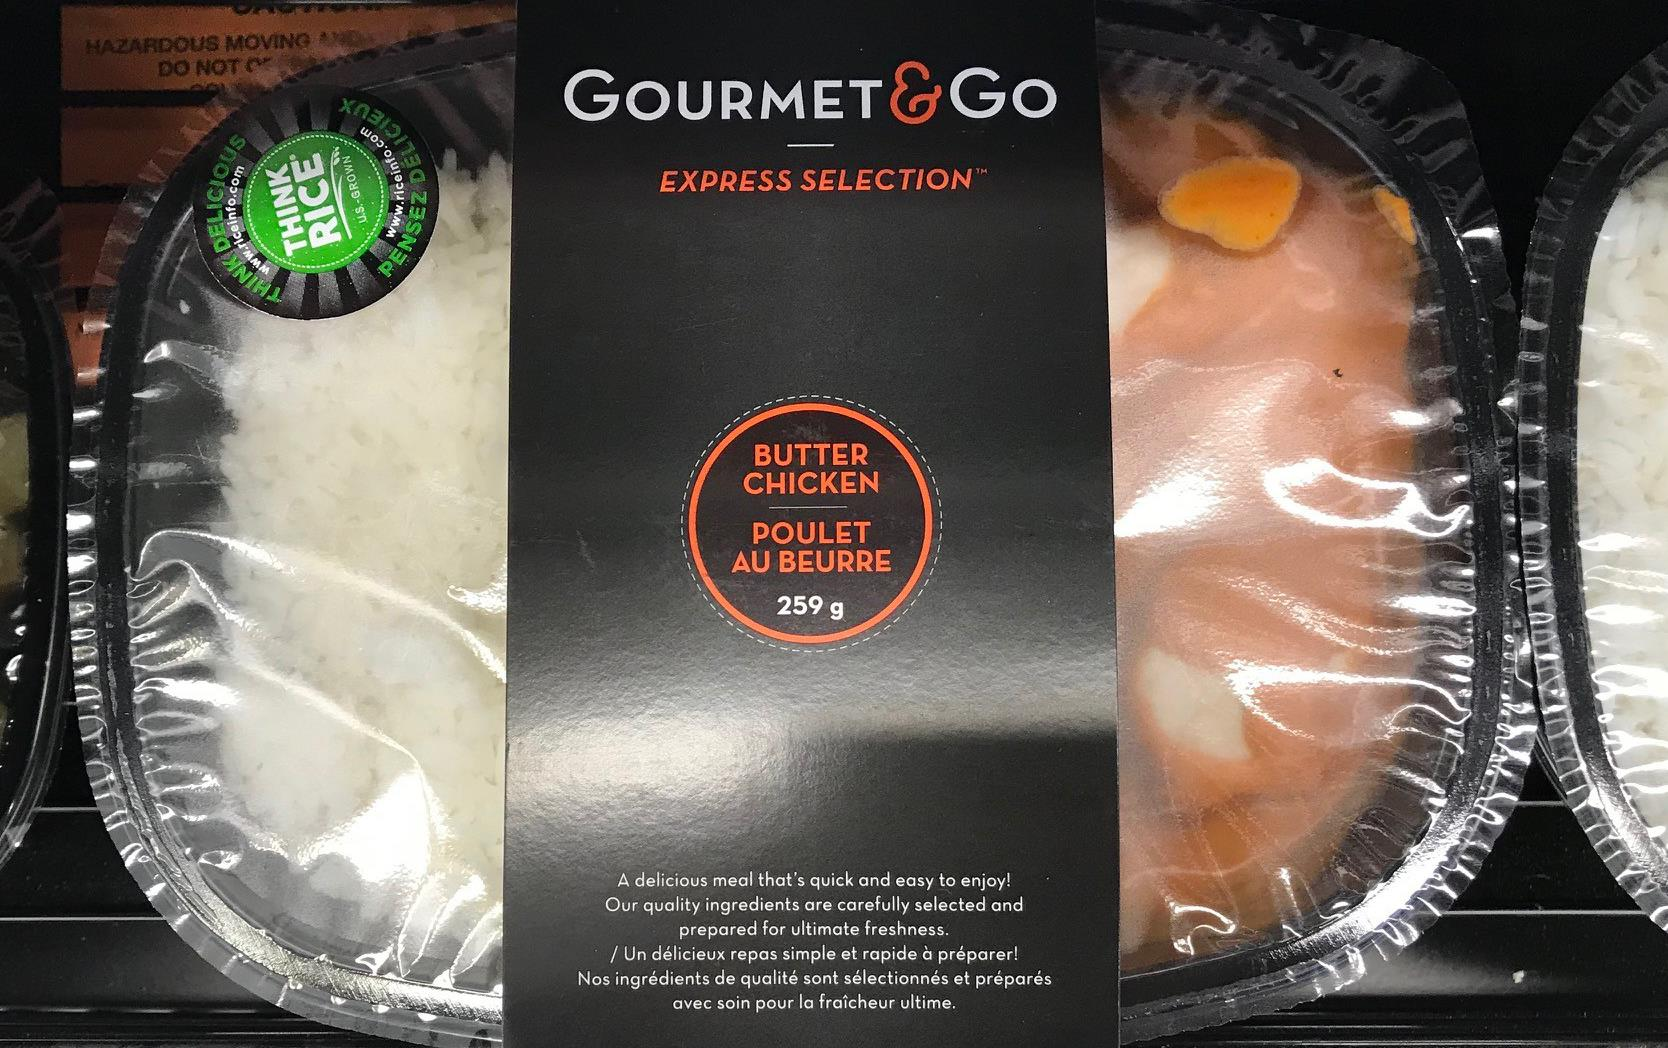 Gourmet & Go butter chicken food package with green Think Rice logo